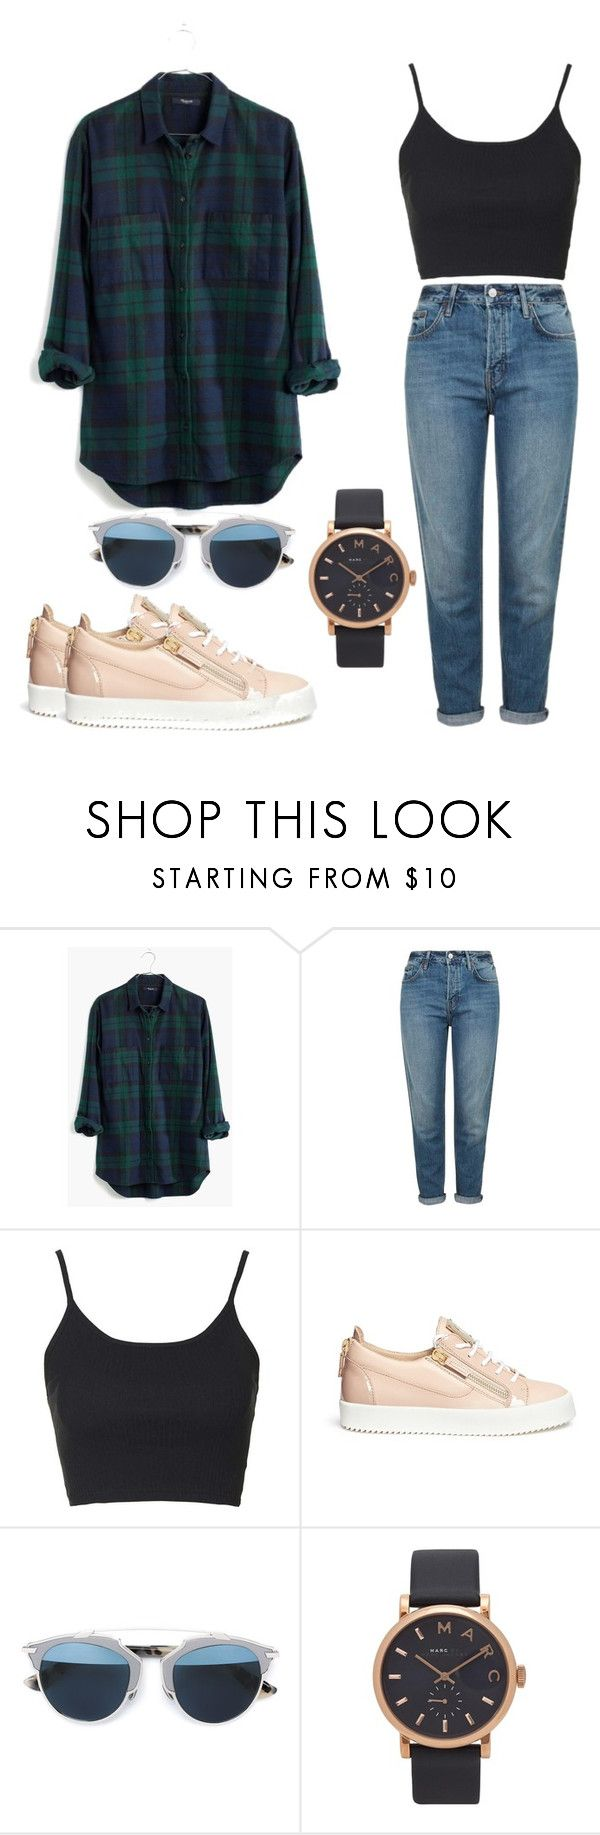 #OOTD35 by salbiylaazzara-fashion on Polyvore featuring Madewell, Topshop, Giuseppe Zanotti, Marc Jacobs and Christian Dior